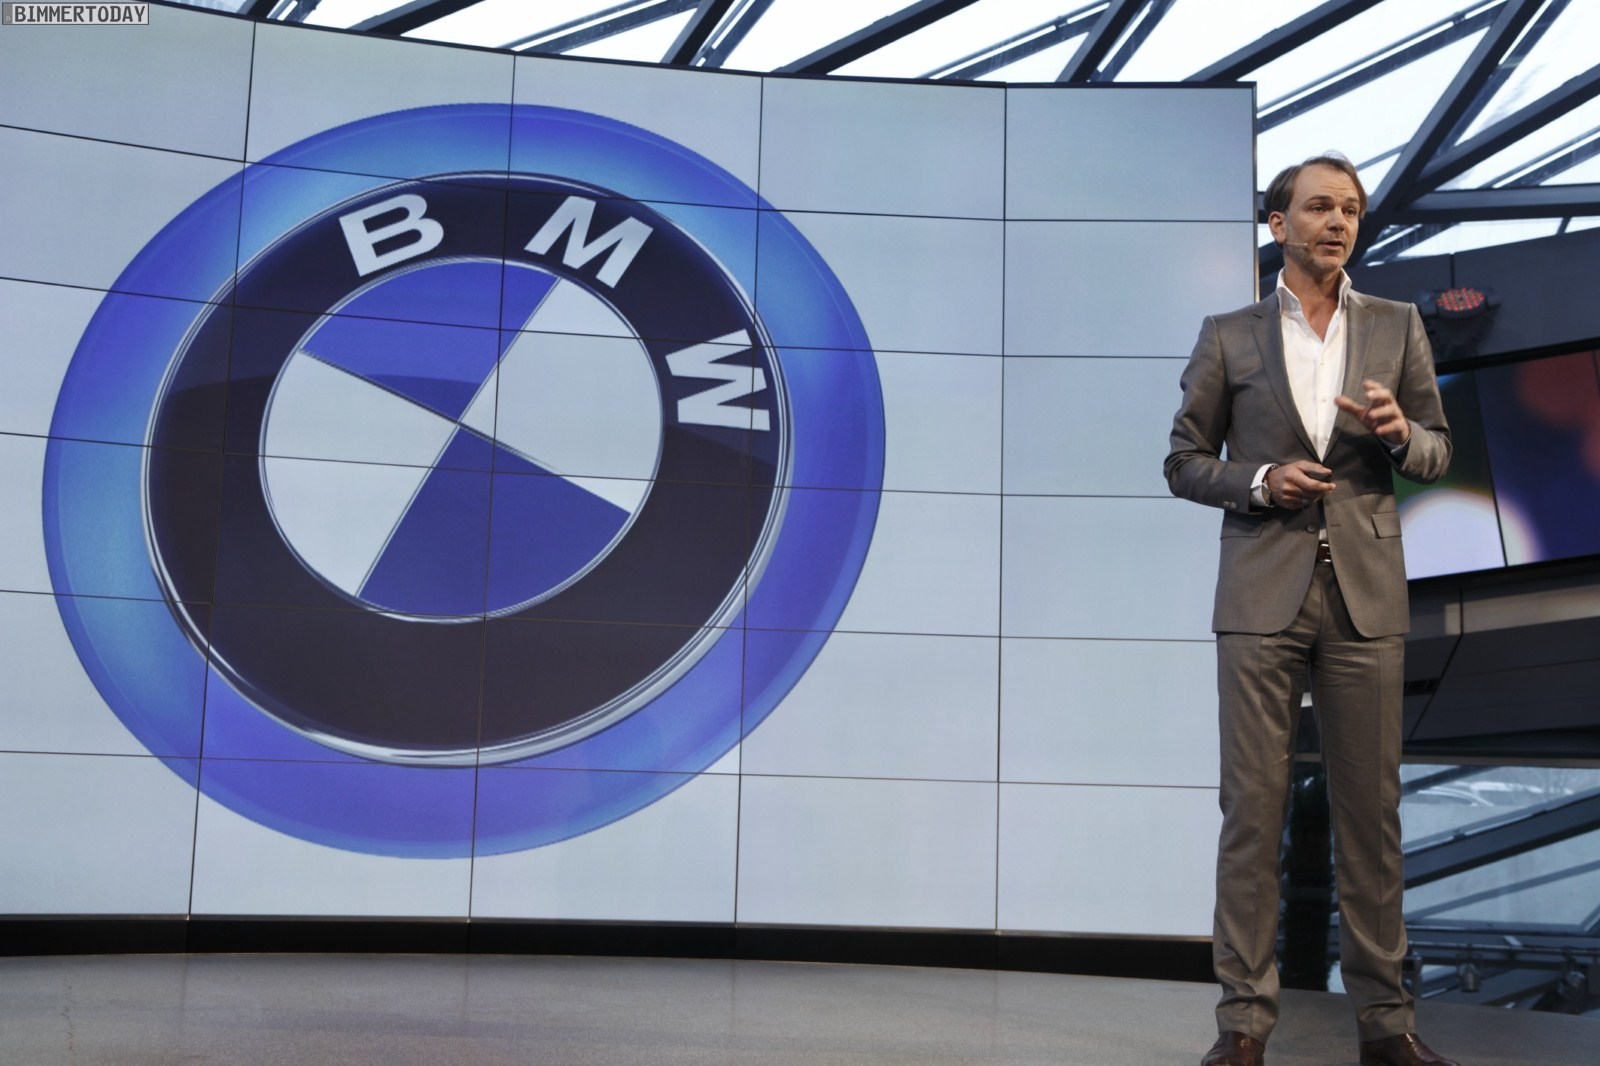 BMW don't want to do automated driving because think that the technologies must be 100% reliable